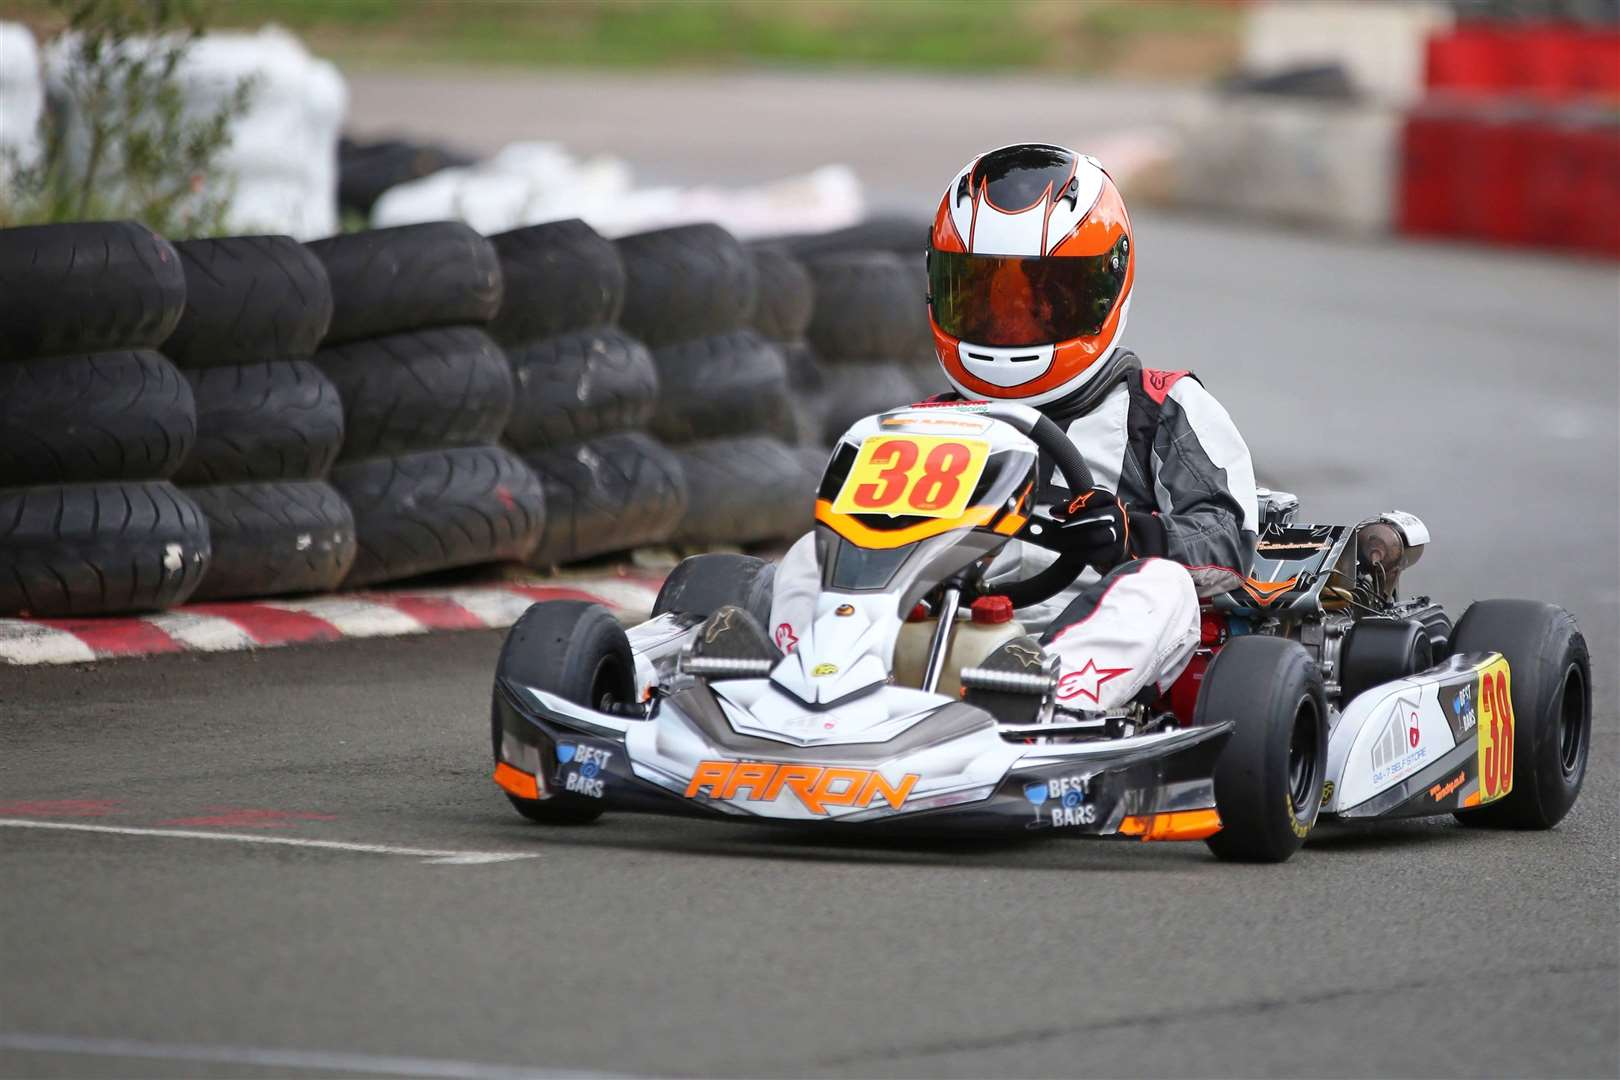 Aaron Alexander and his karting team raced in Round 6 of the SCSS 200 Honda Cadet Extreme kart Championship last weekend at Stretton in Leicestershire. Kart Picture taken by Mark Hall Photography. (4133060)